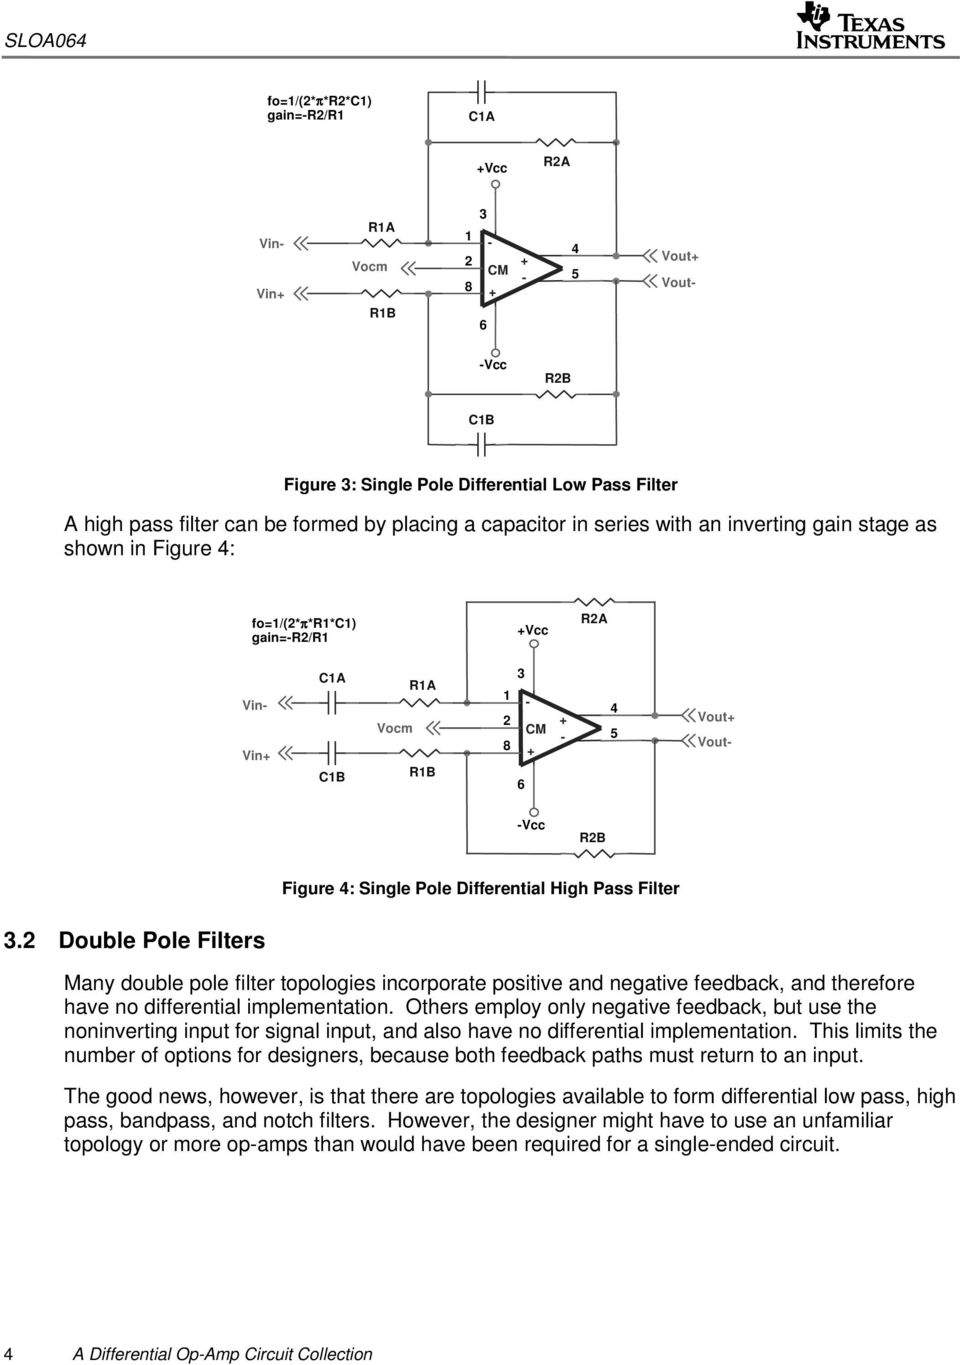 Opamp And Level Meter Circuits Are Incorporated Into A Mixing Circuit Differential Op Amp Collection Pdf Double Pole Filters Many Filter Topologies Incorporate Positive Negative Feedback Therefore